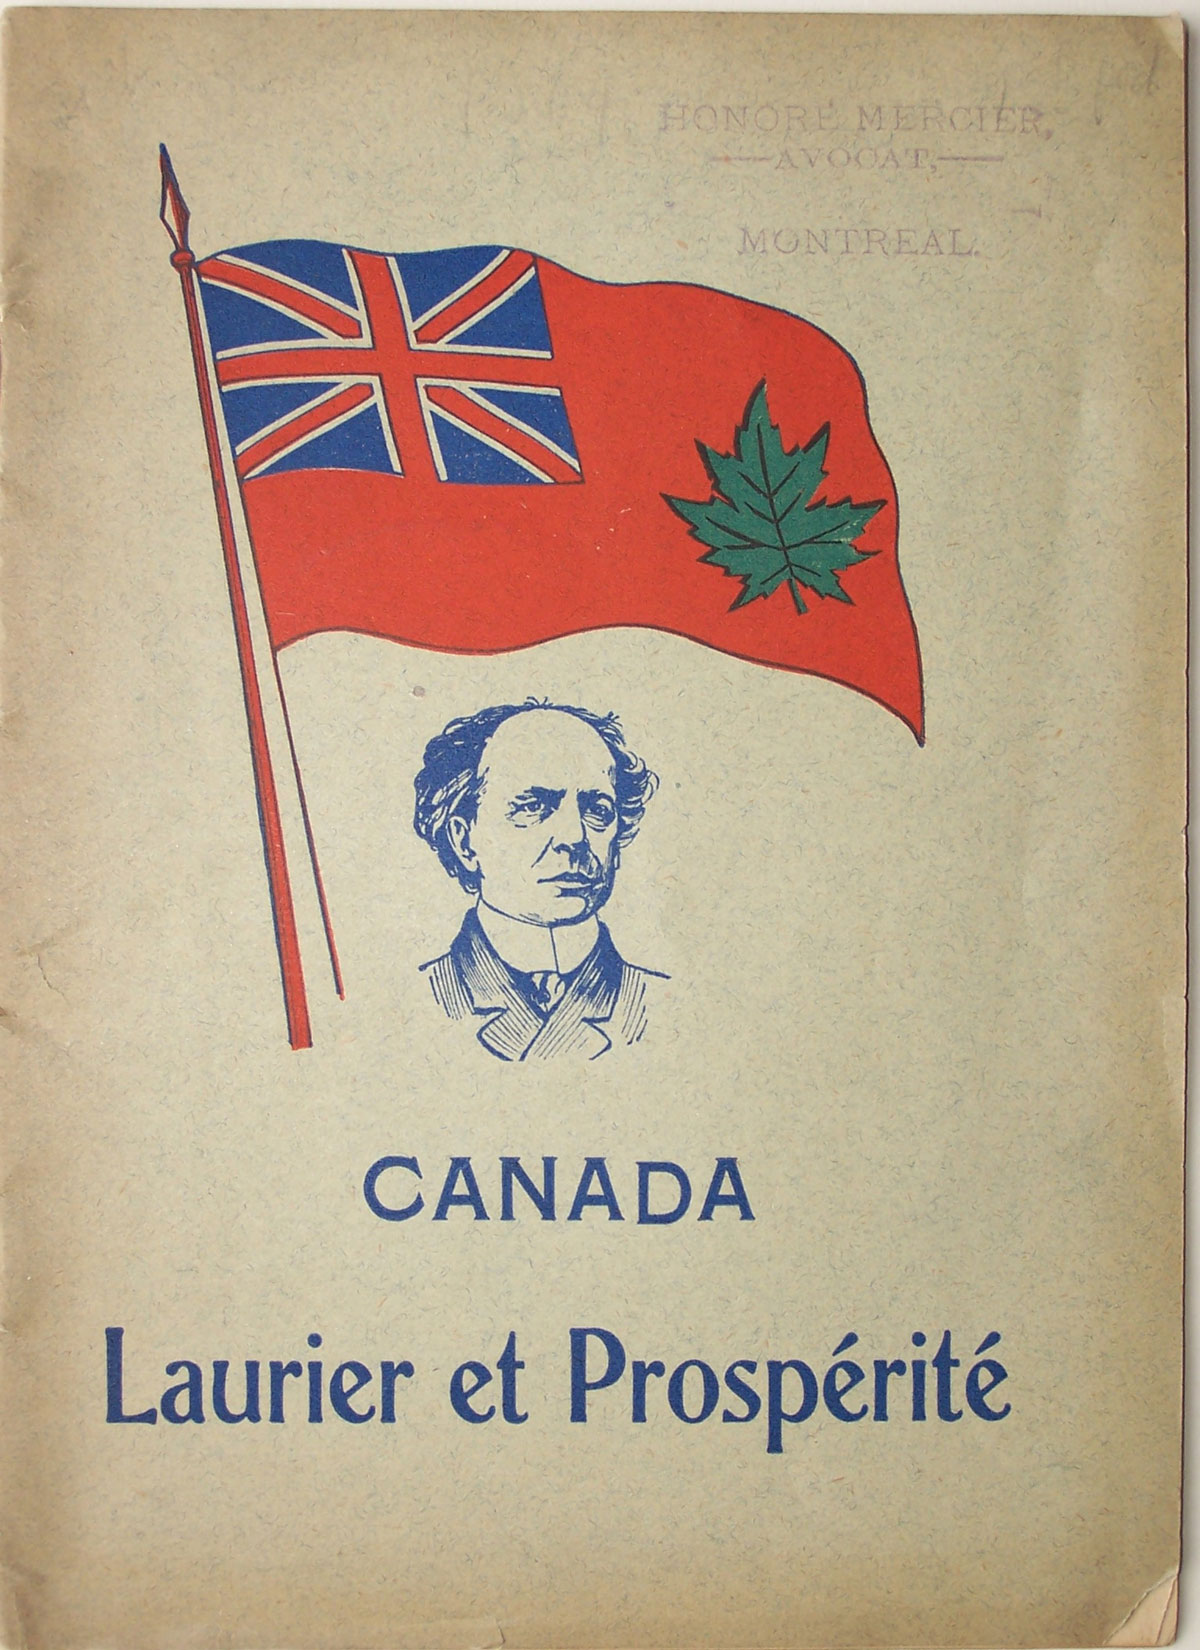 Promotional pamphlet: Canada : Laurier et Prospérité [Canada: Laurier and Prosperity], 1903 — an early example of political marketing. Canadian Museum of History, Library, ACQ 2012.17, temporary no. 174.3. Gift of Serge Joyal. Photo: Xavier Gélinas, 174.3